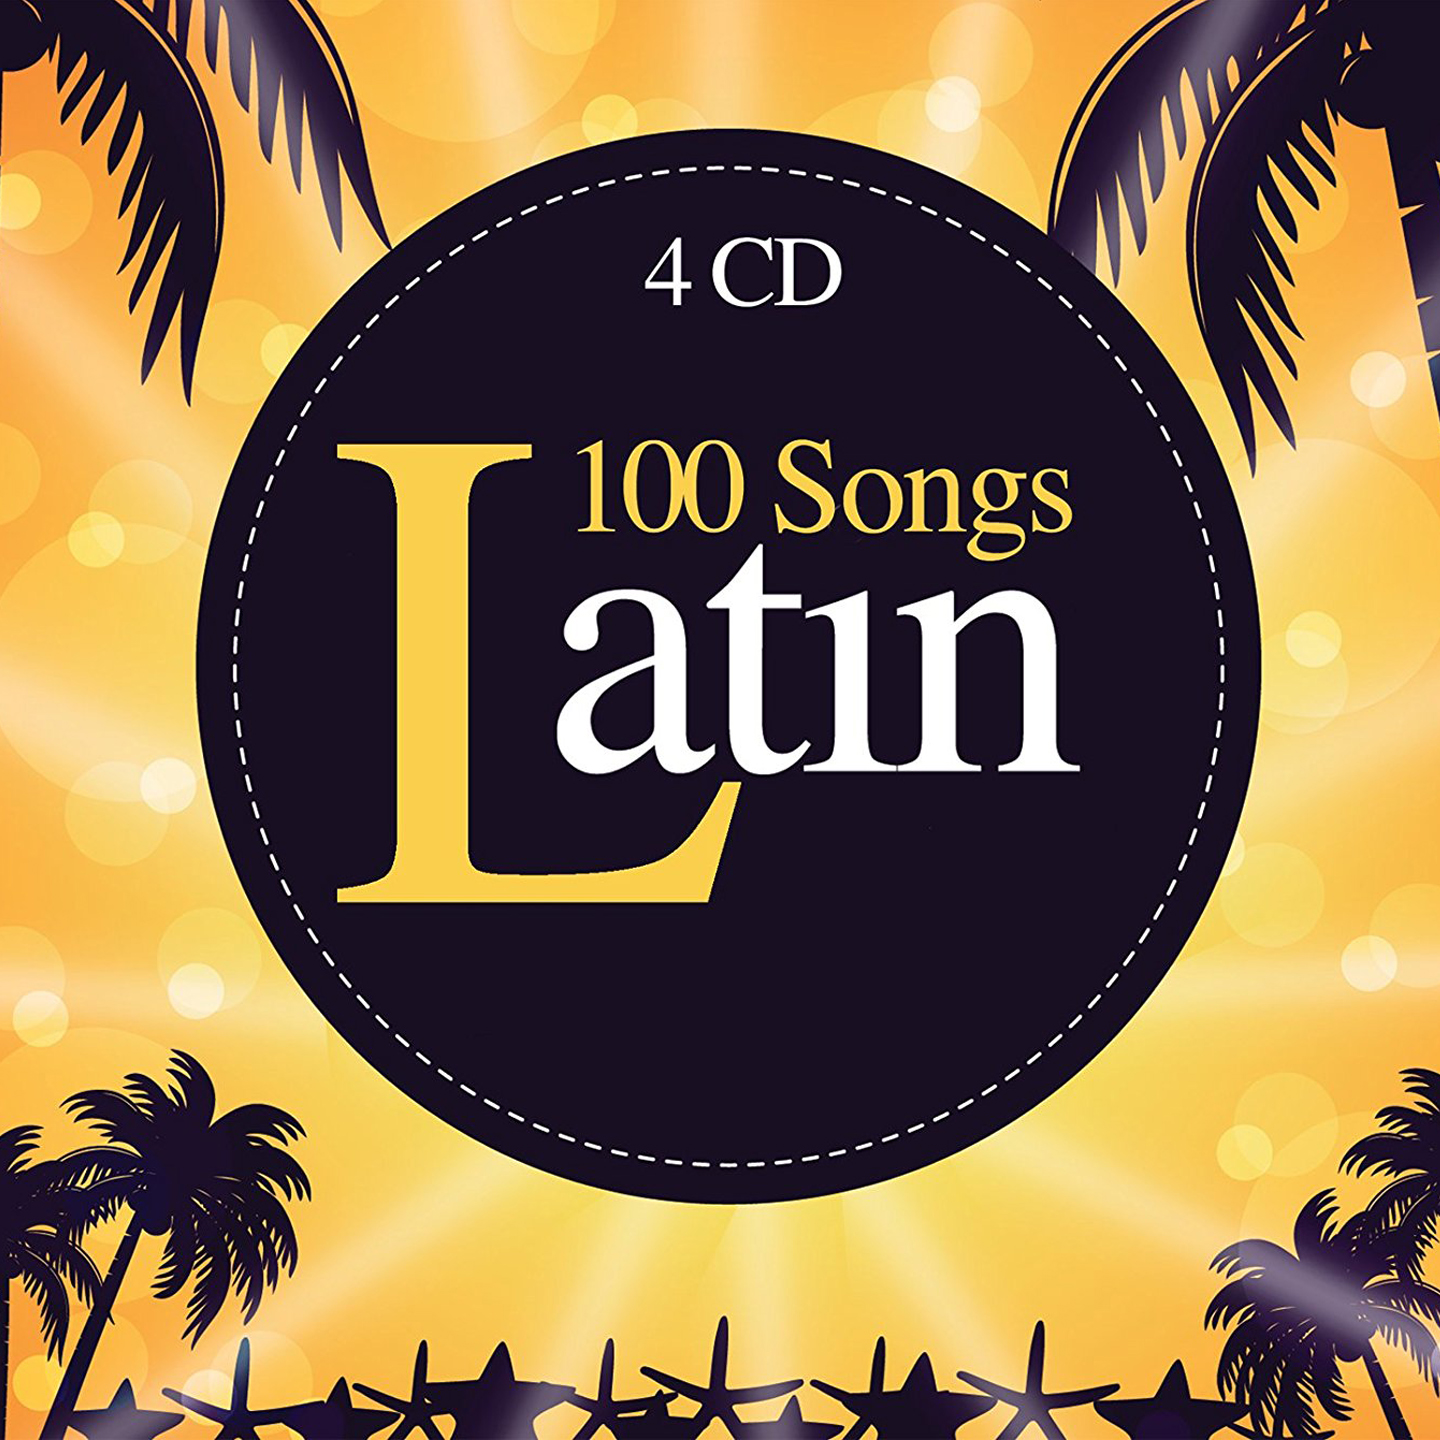 100 Songs Latin